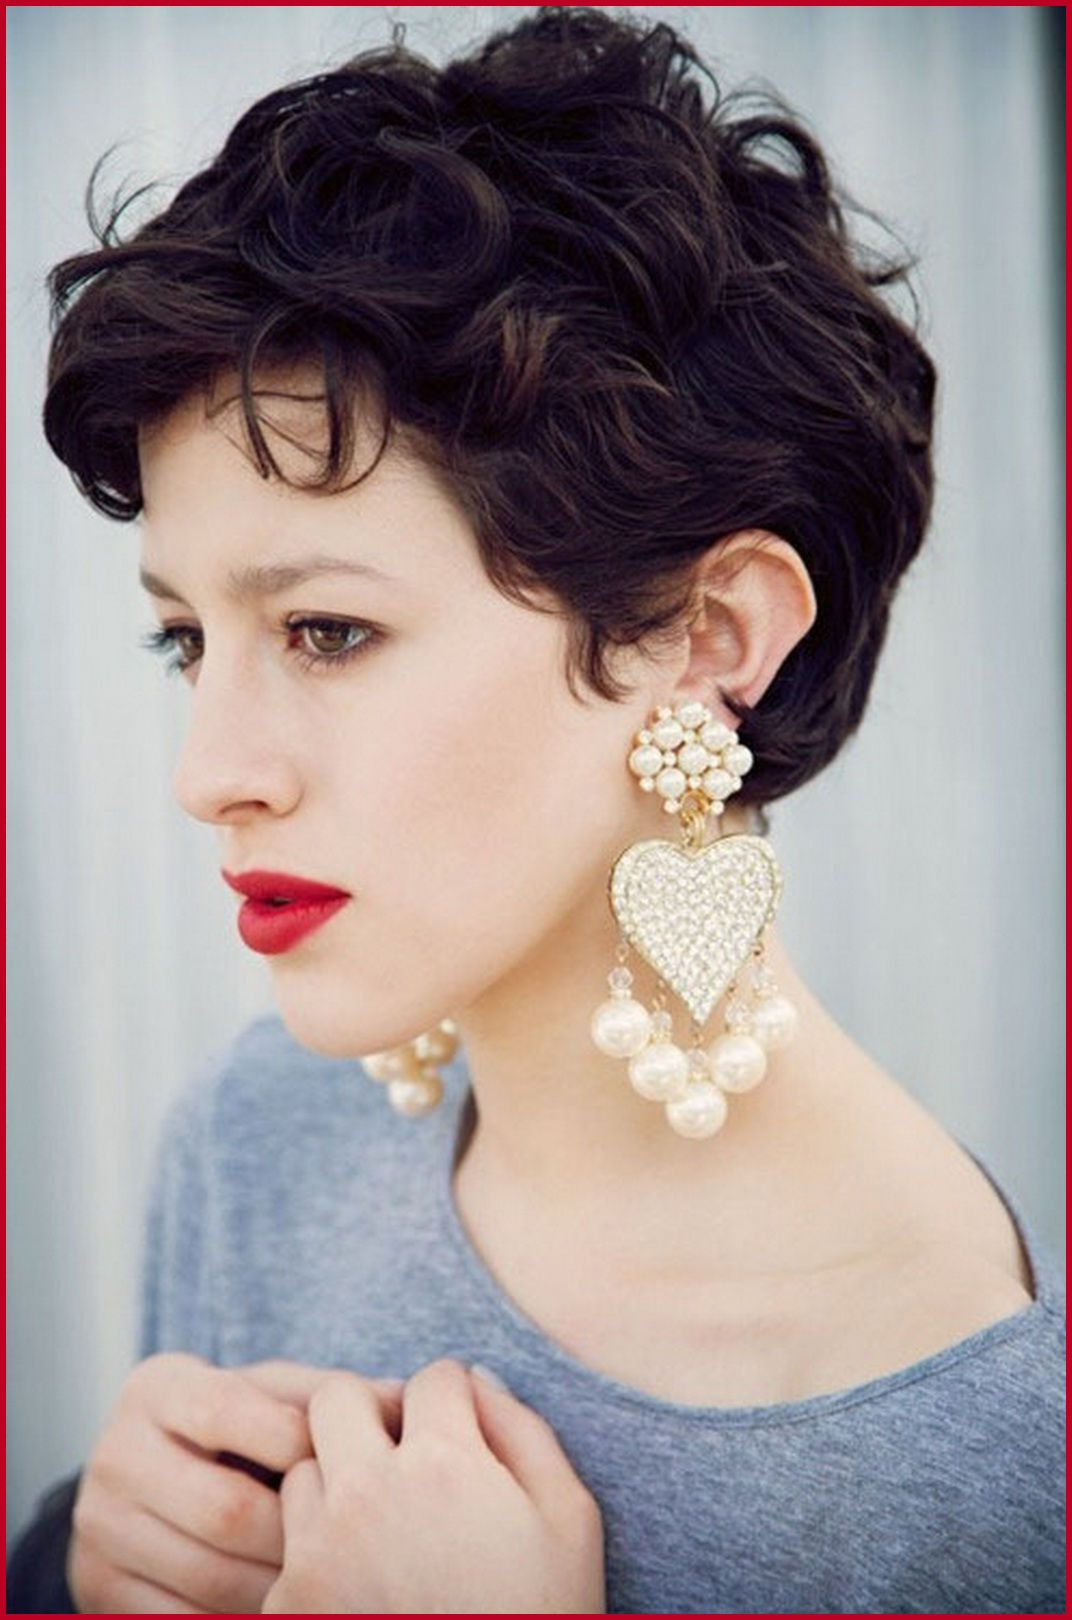 Short Haircuts For Thick Curly Hair 222836 Short Hairstyles Thick Pertaining To Short Haircuts Curly Hair Round Face (View 22 of 25)